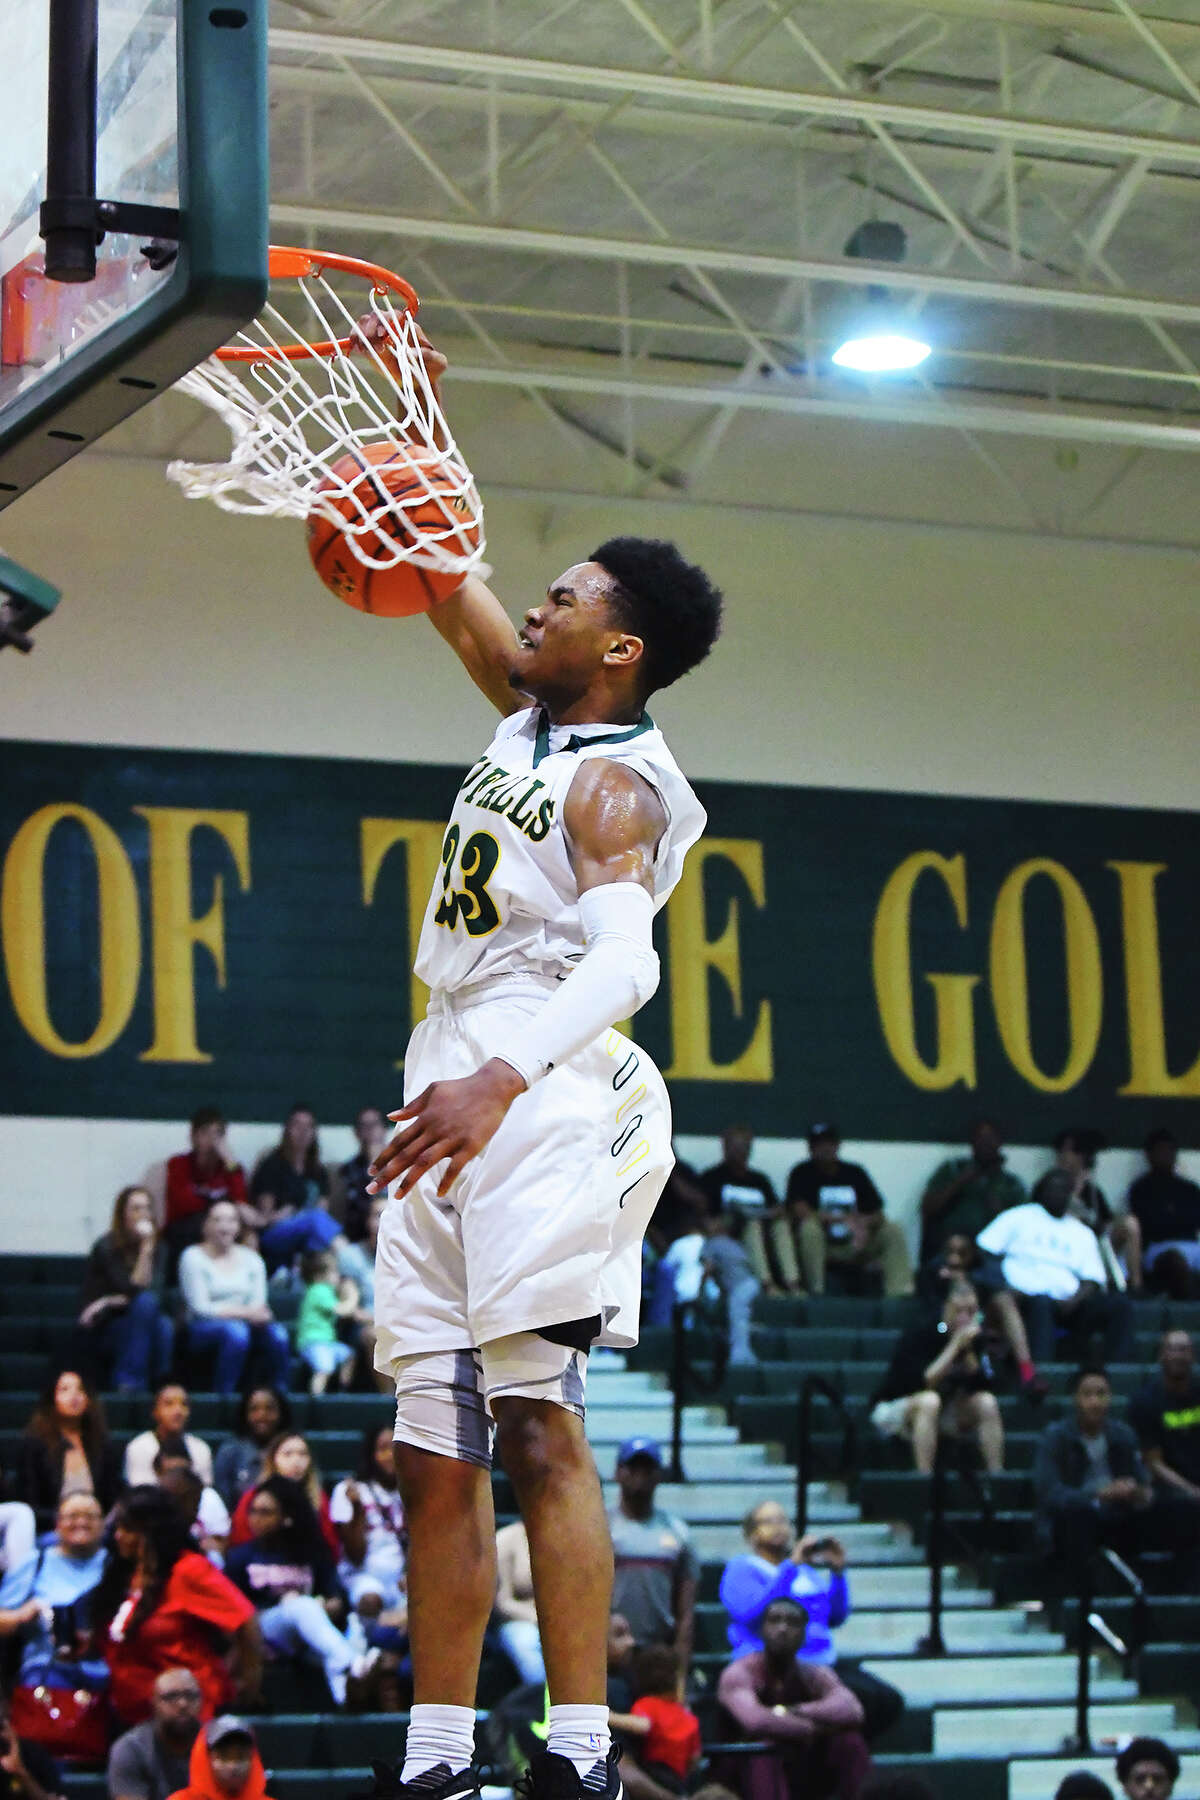 Cy Falls junior guard Nigel Hawkins crams it home at the Border Battle at Cy Falls Tuesday. Hawkins was superlative in the Eagles' matchup against Westfield, scoring a game-high 25 points, and dishing assists and nabbing steals, doing everything and doing it well.